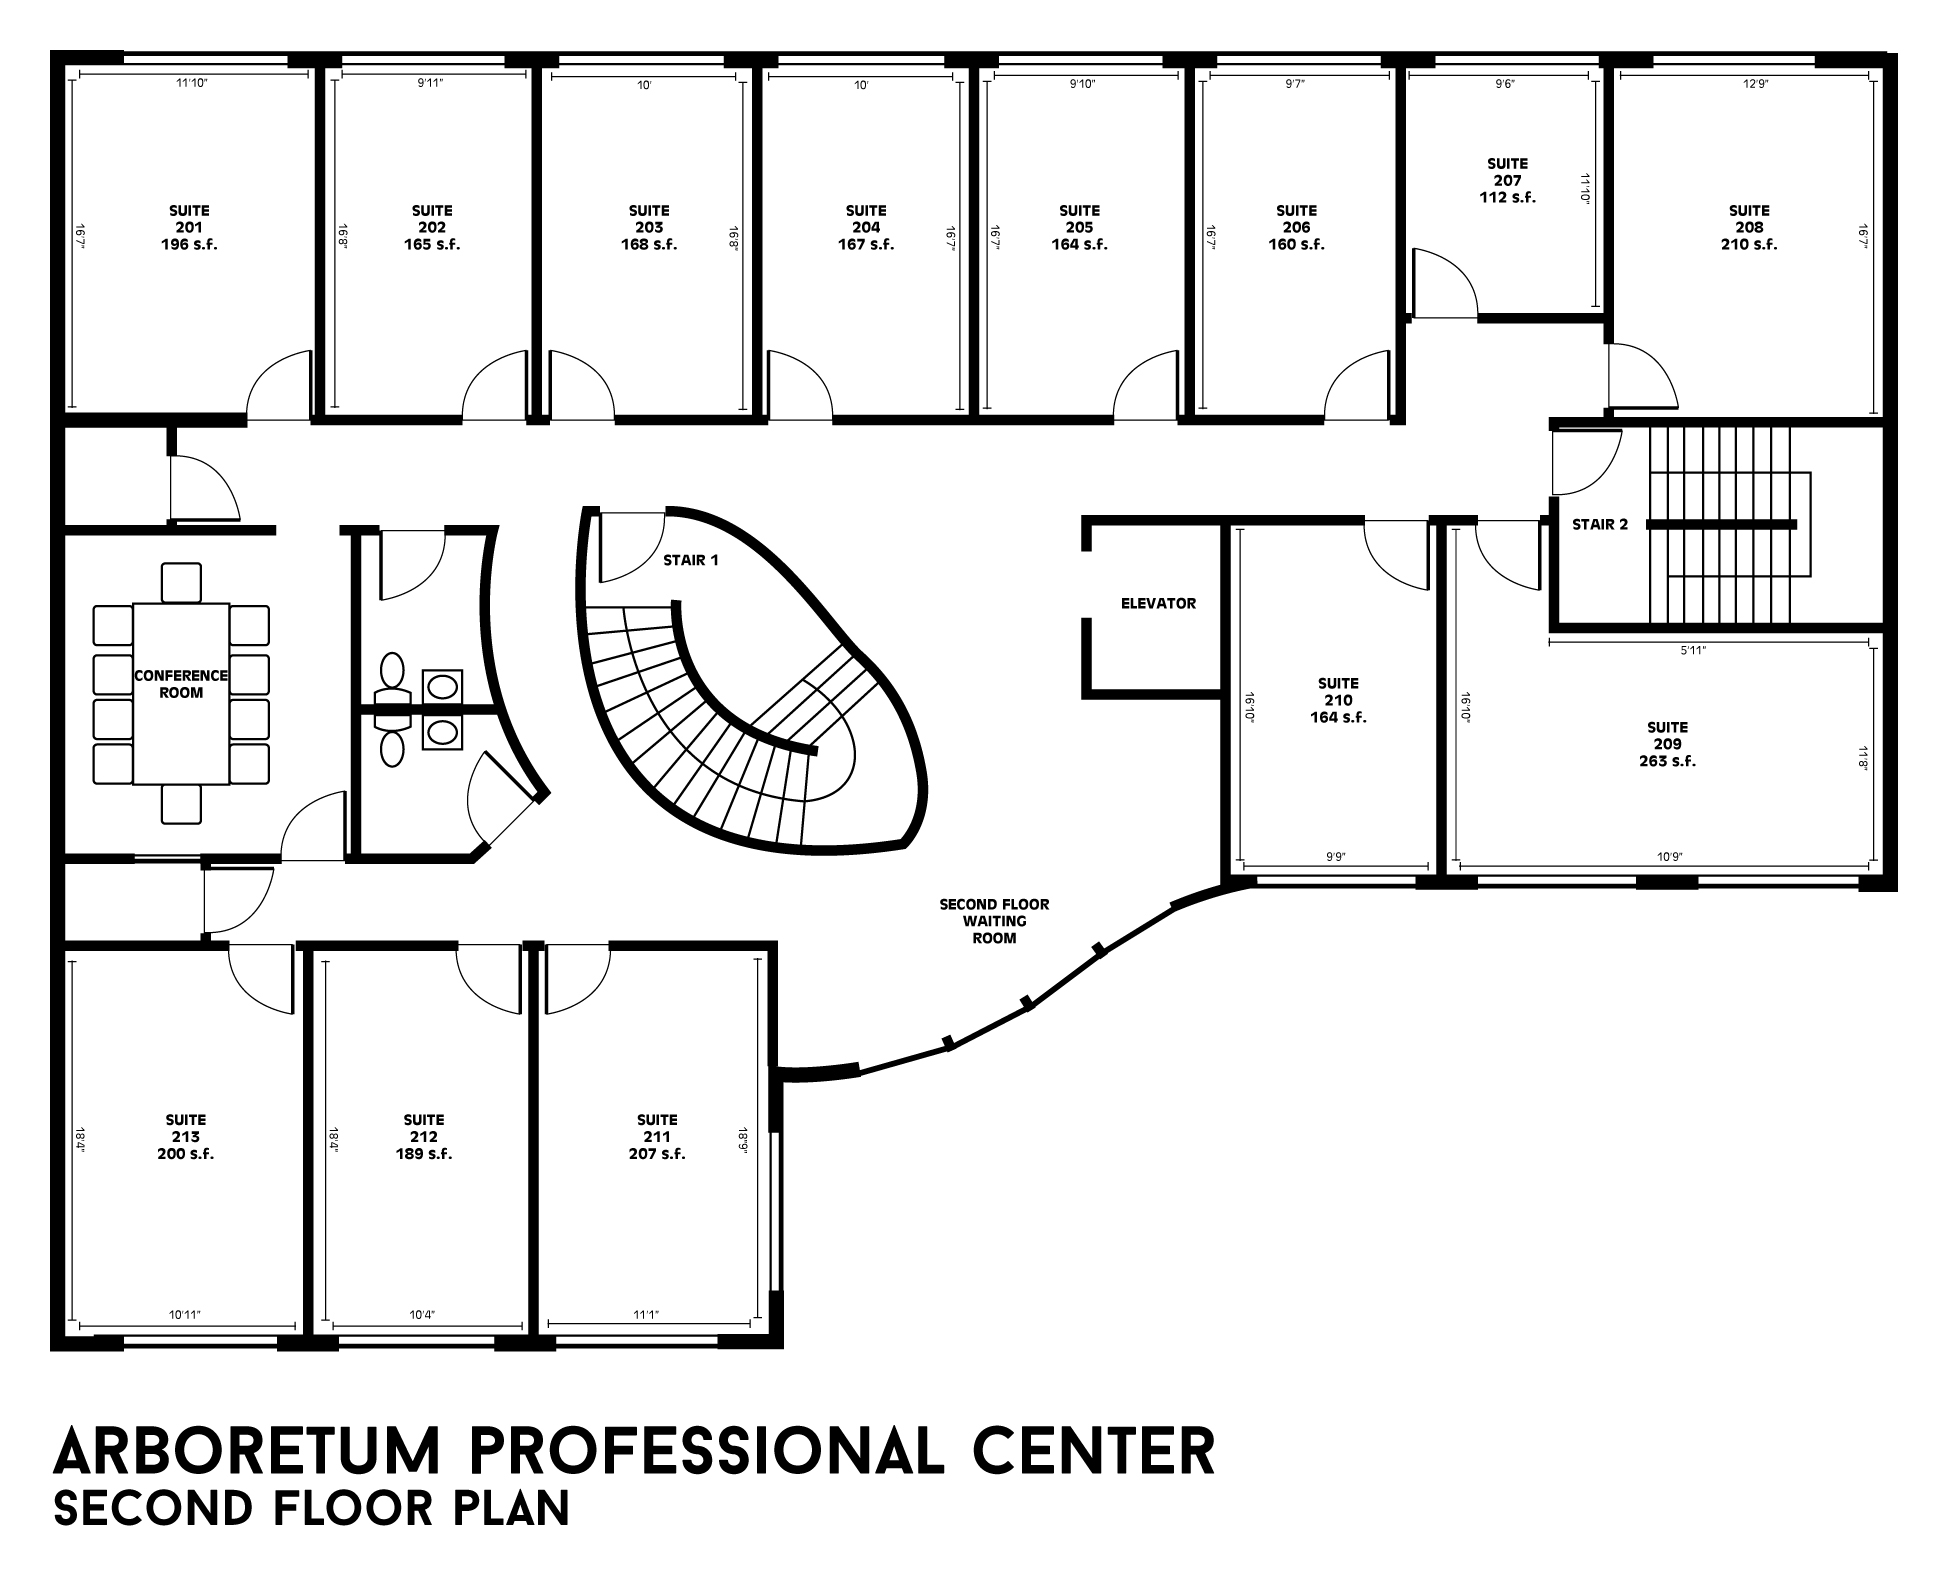 28 building floor plans arboretum professional free for U build it floor plans